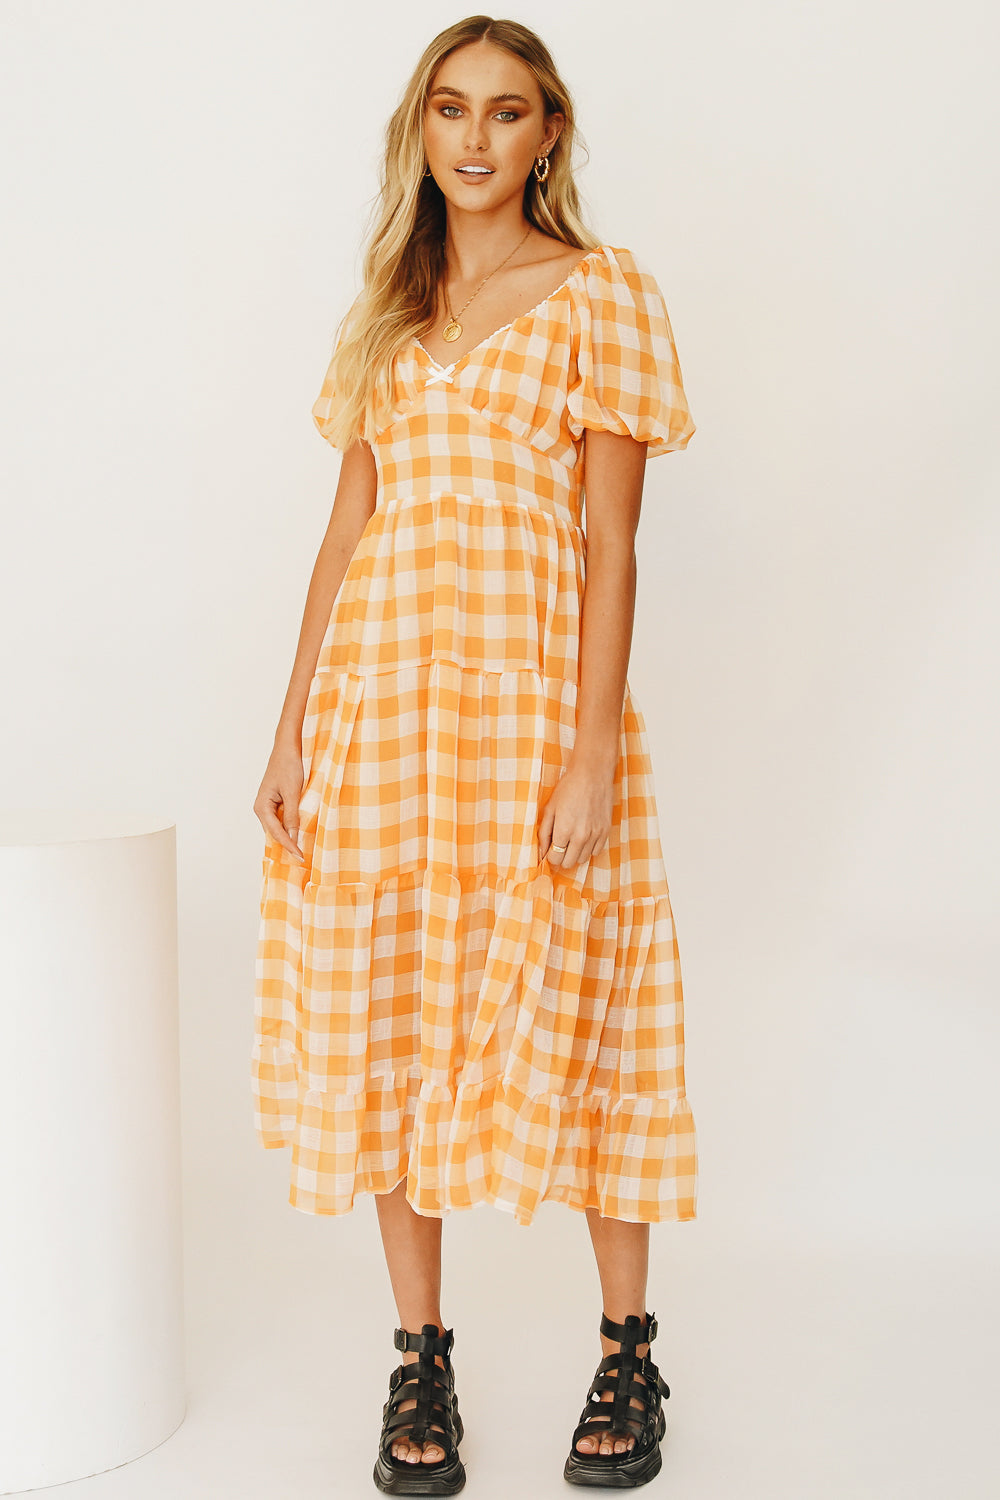 Golden Day Check Midi Dress // Orange